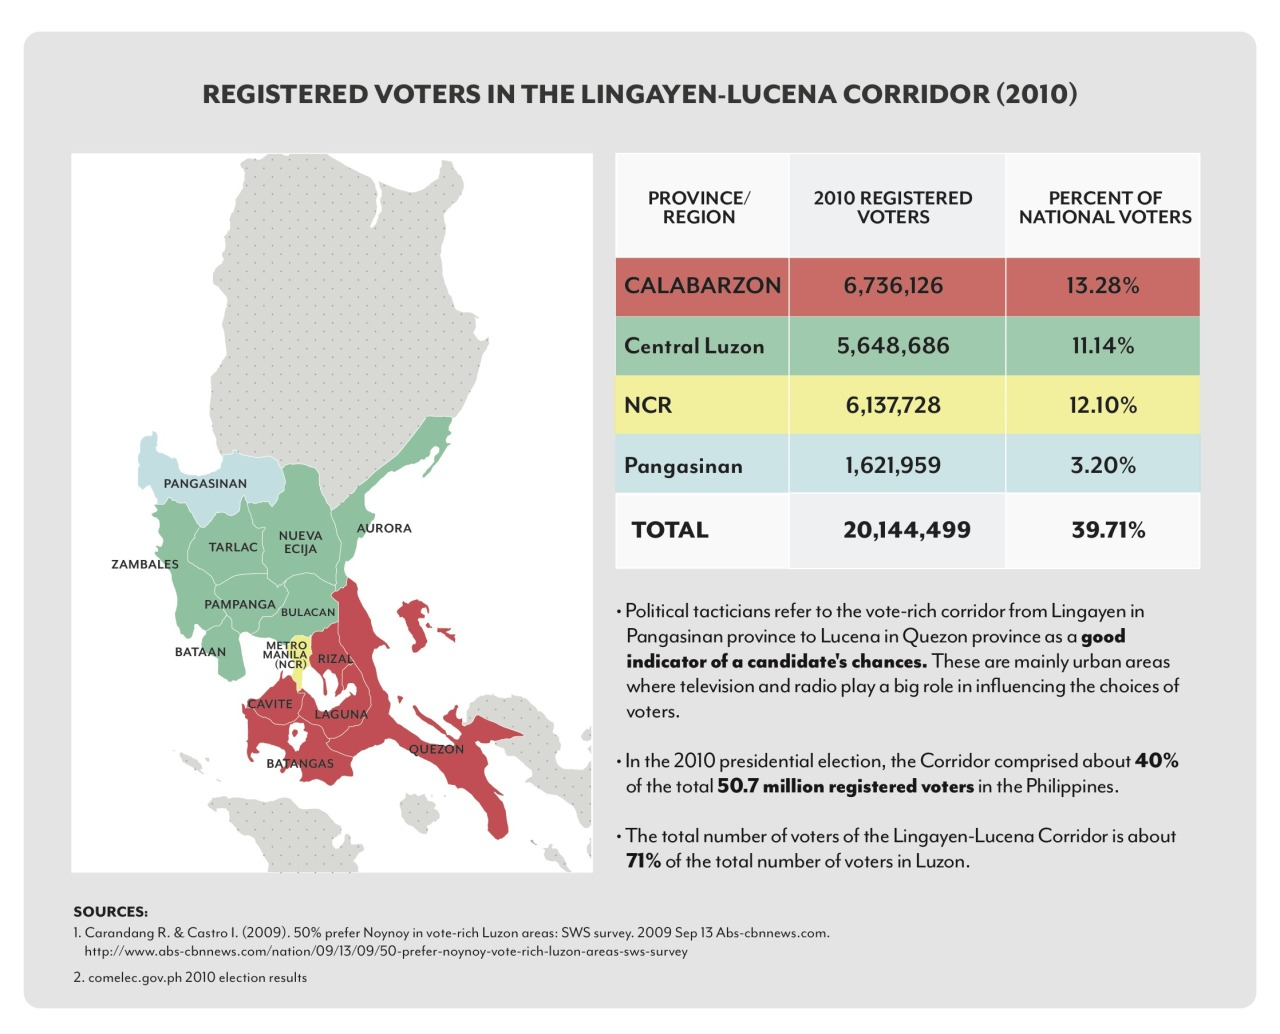 "Now let's zoom in, so to speak, on Map 3, which shows the Lingayen-Lucena ""corridor,"" with the respective percentage of the national vote each area within represents. These are areas, as the chart explains, which are often targeted for initial surveys when candidates and parties are considering their electoral chances; and which become a crucial battleground because residents are easily reachable by means of the media.  Why not check out the Philippine Electoral Almanac? A useful compendium of information, charts, graphs, and data on Philippine elections. And you can read more in my article: The Great Divide: The midterm election of 2013, Part 1 The Great Divide: The midterm election of 2013, Part 2"